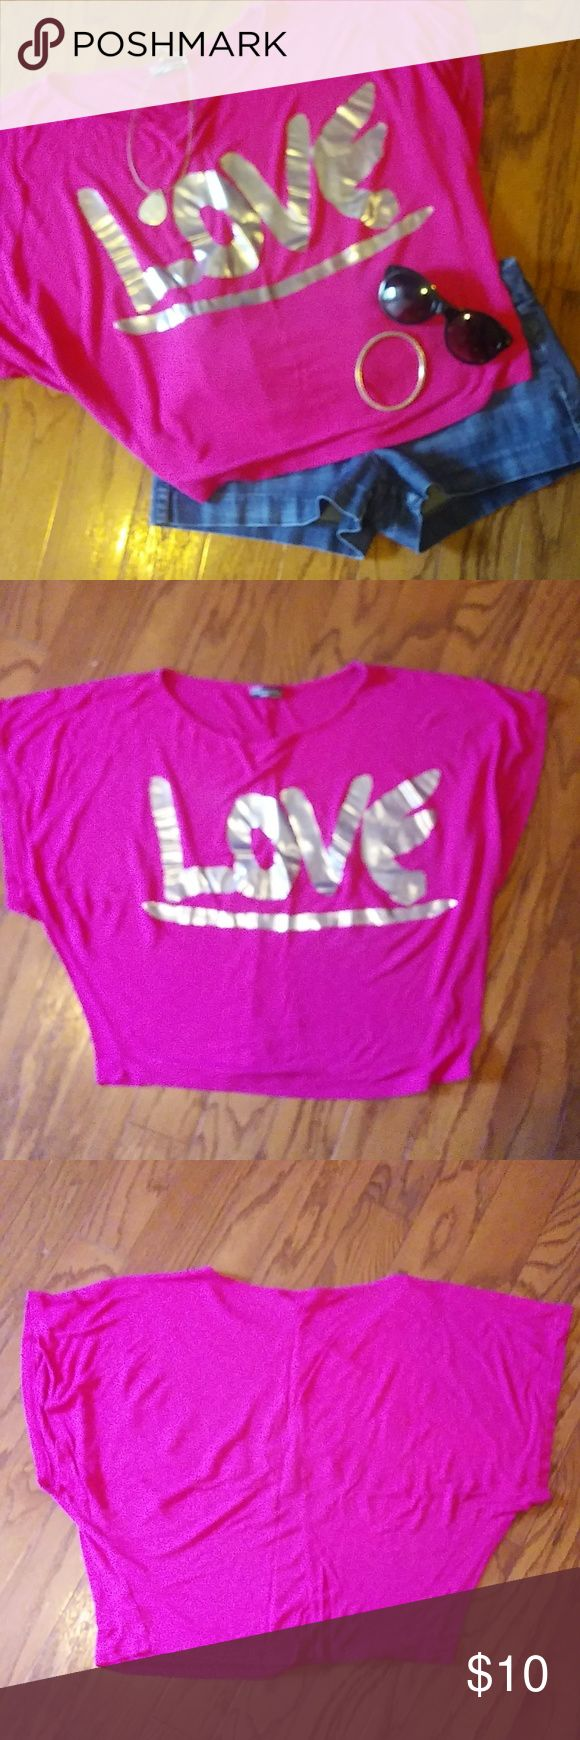 Body Central pink top Pink Body Central top with the word LOVE embellished in silver. Body Central Tops Crop Tops